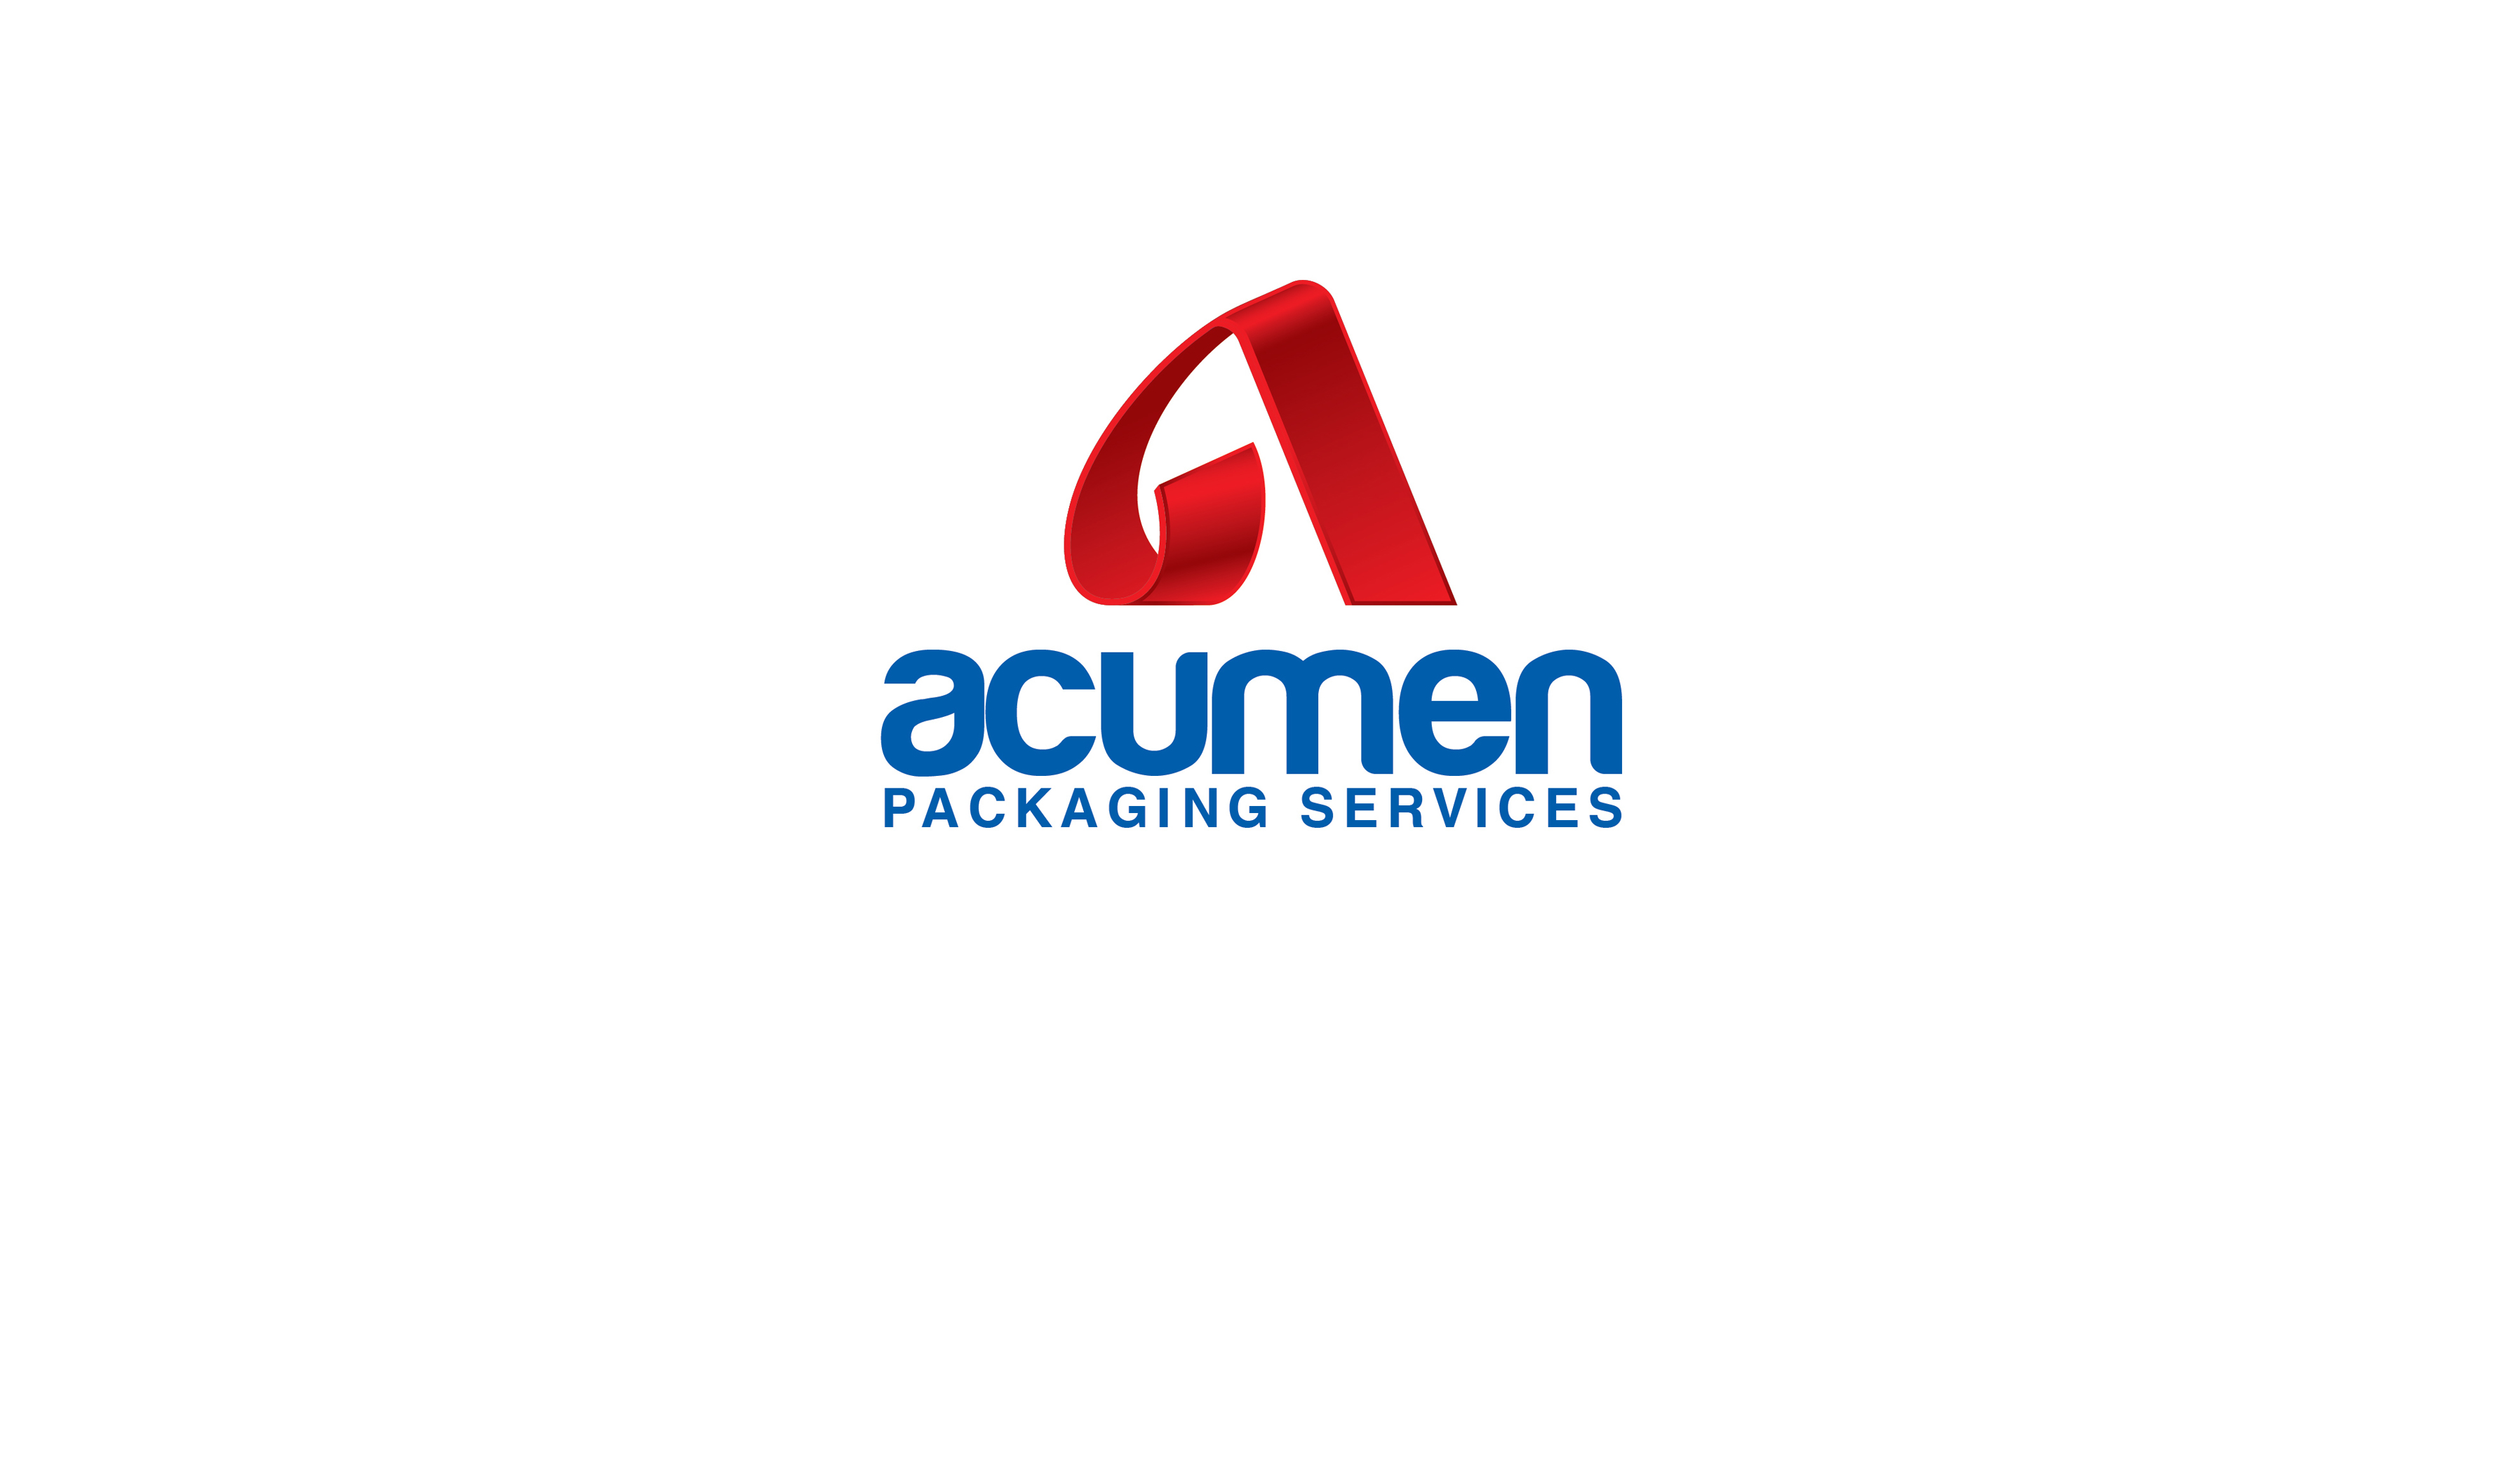 Acumen-Packaging-Services